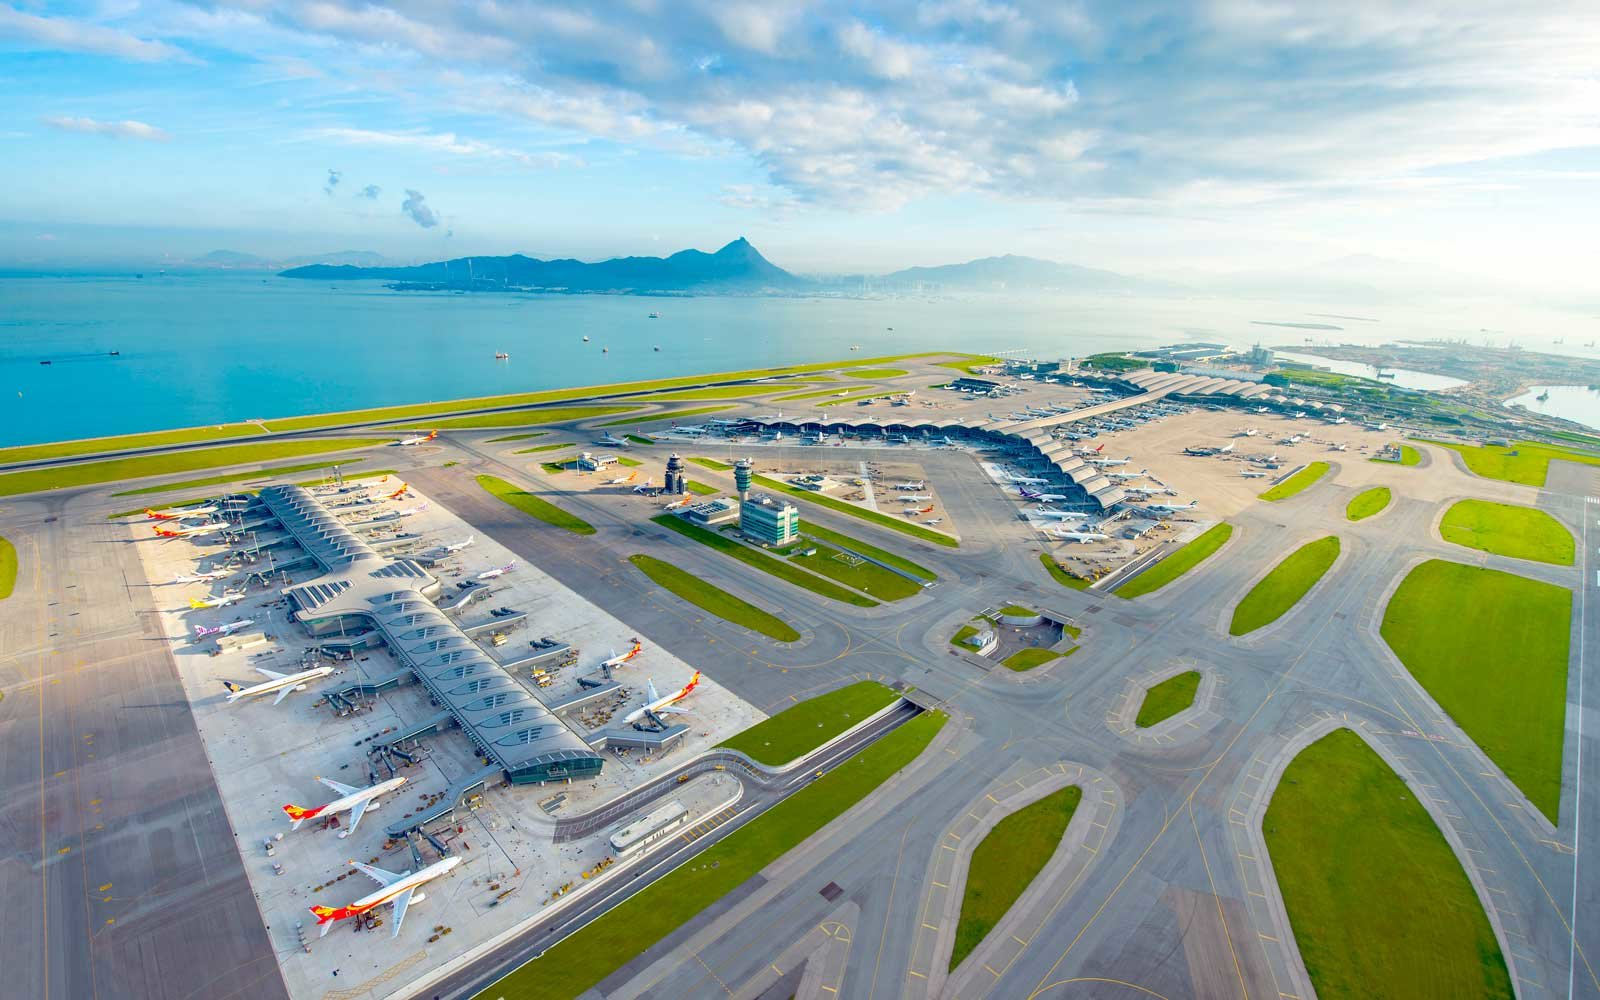 4. Hong Kong International Airport